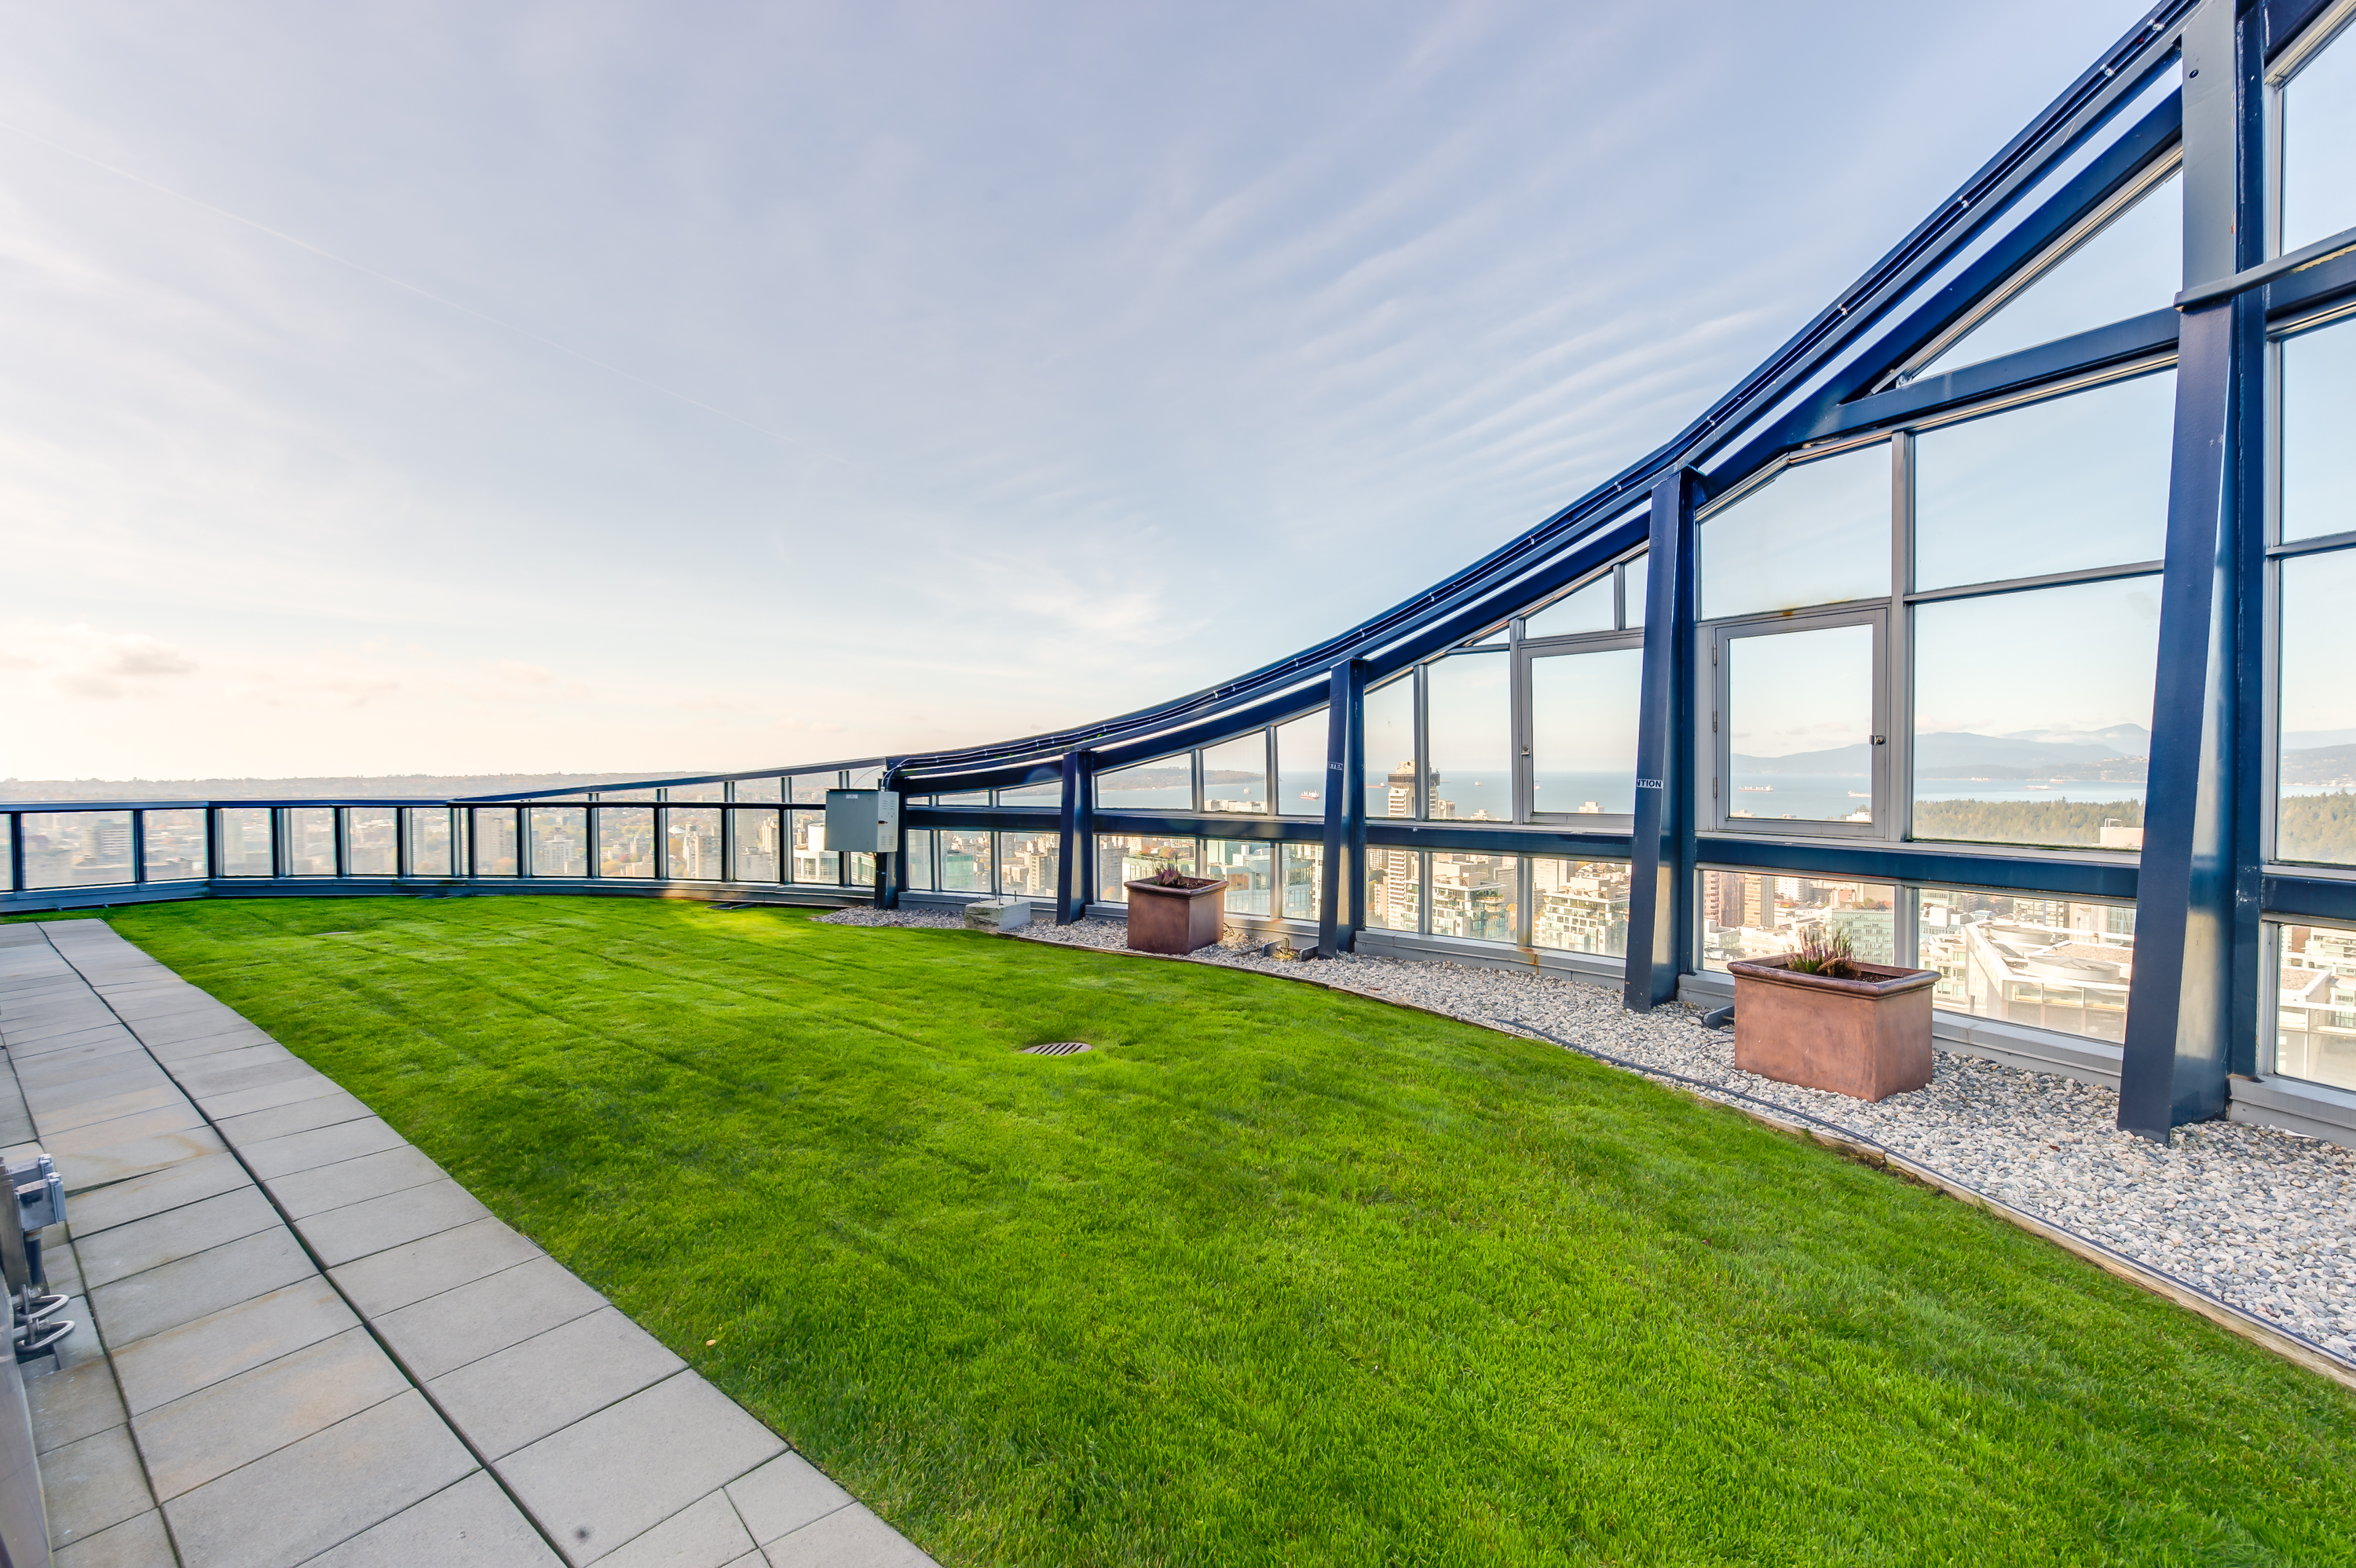 1189 Melville Roof Top Green